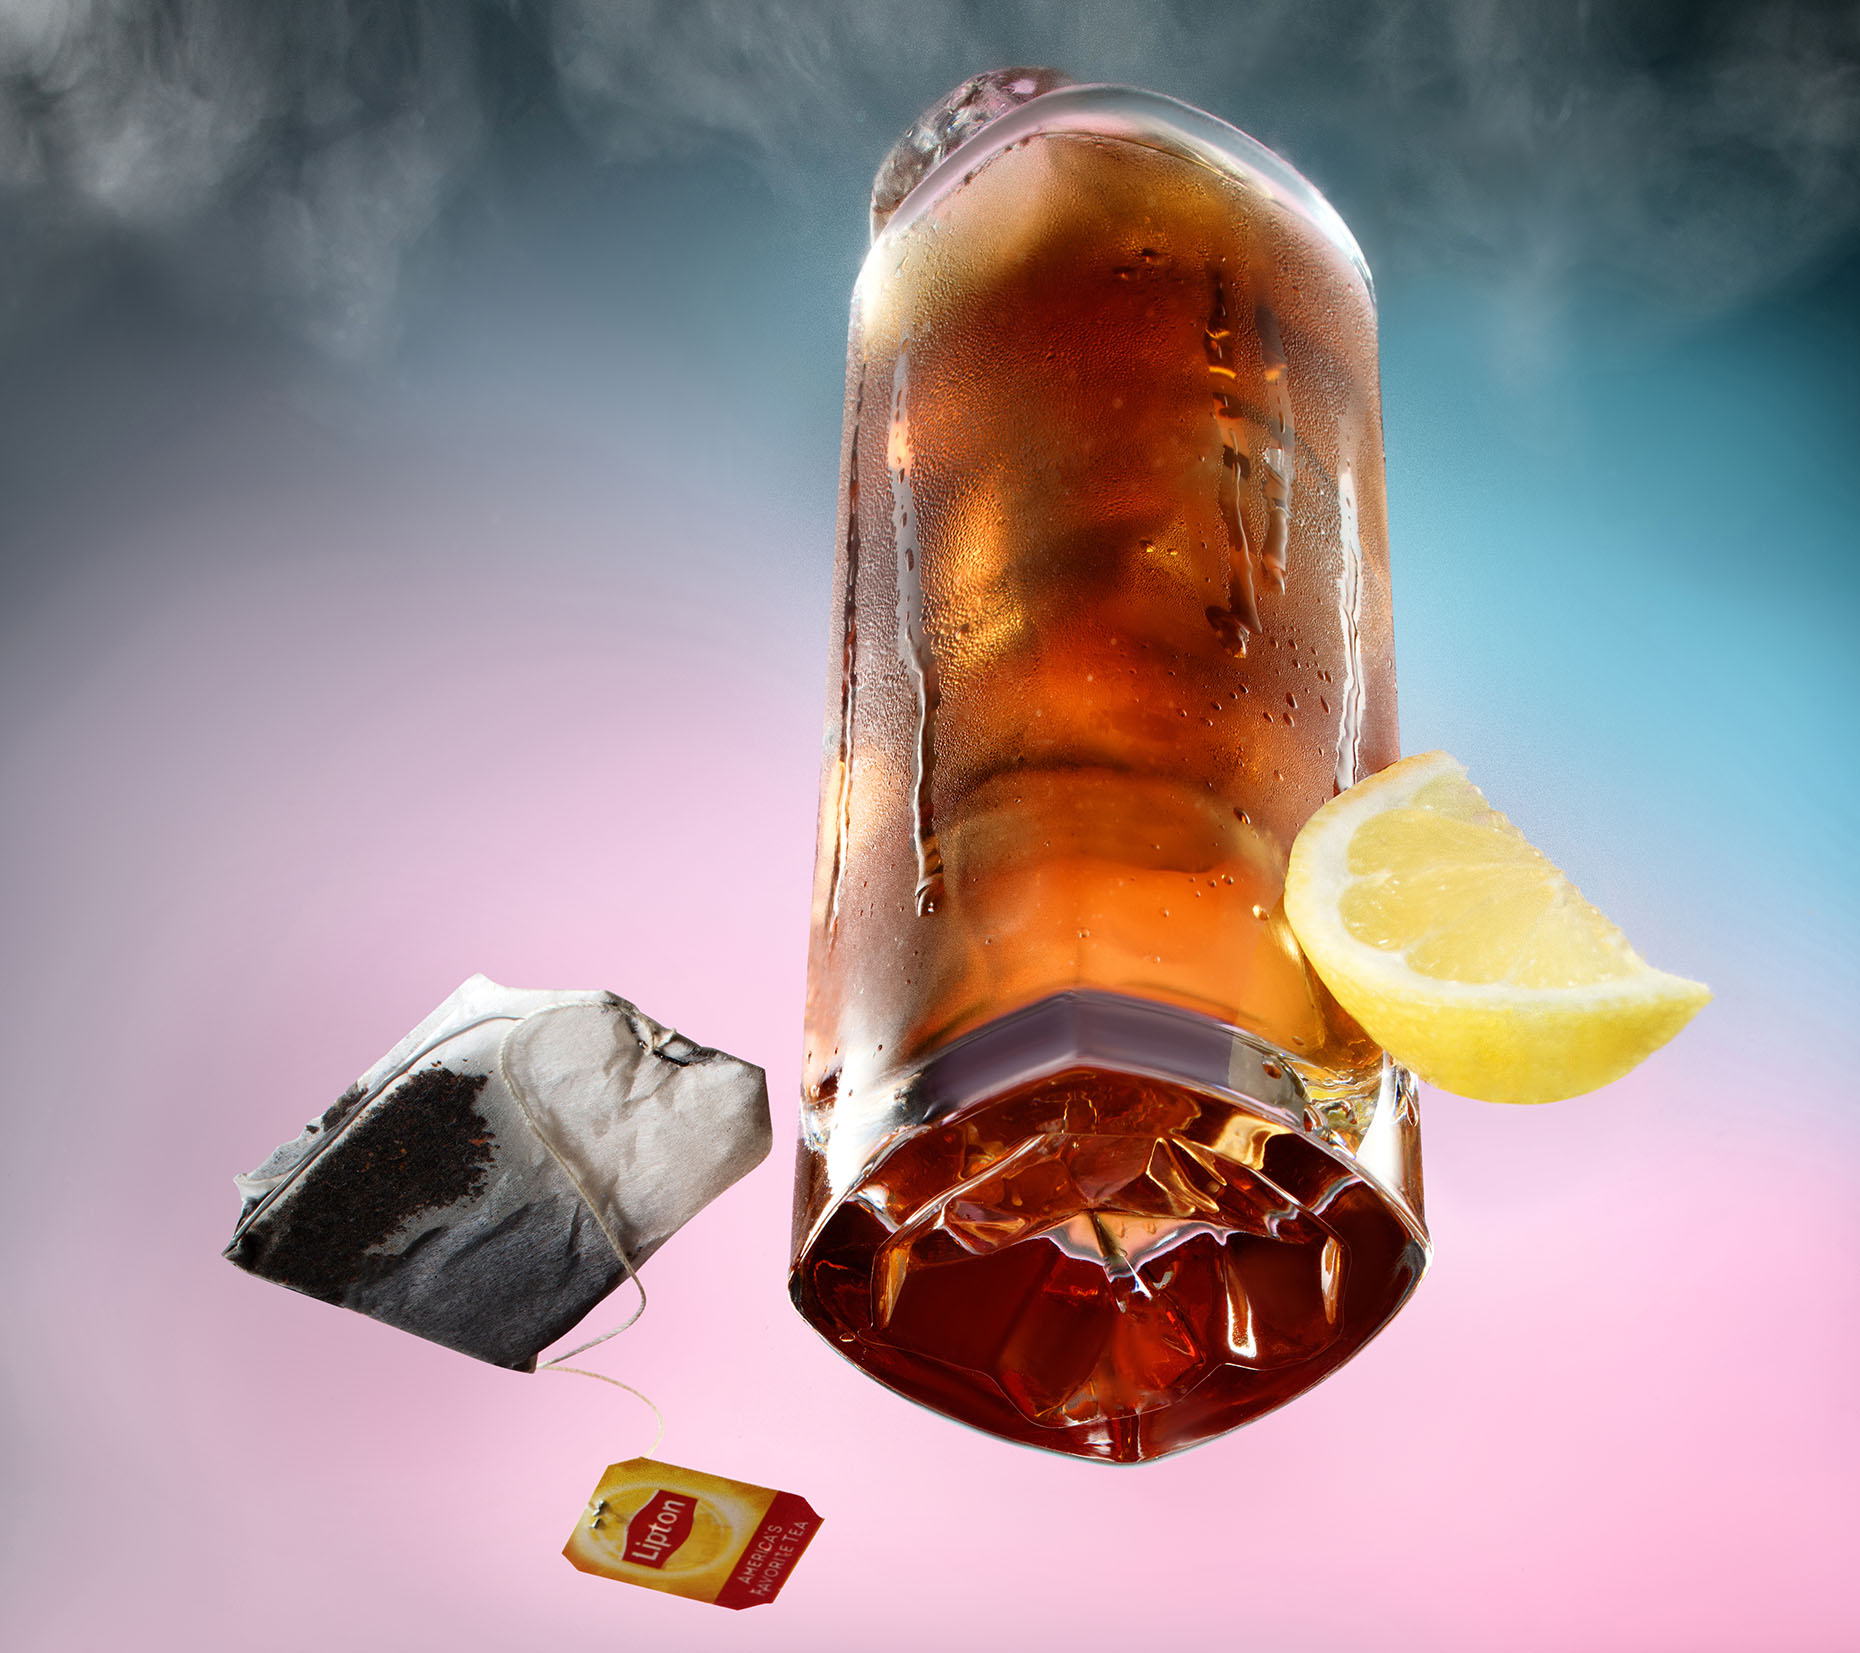 New-York-Drink-photographer-lipton-campaign-still-life-photography